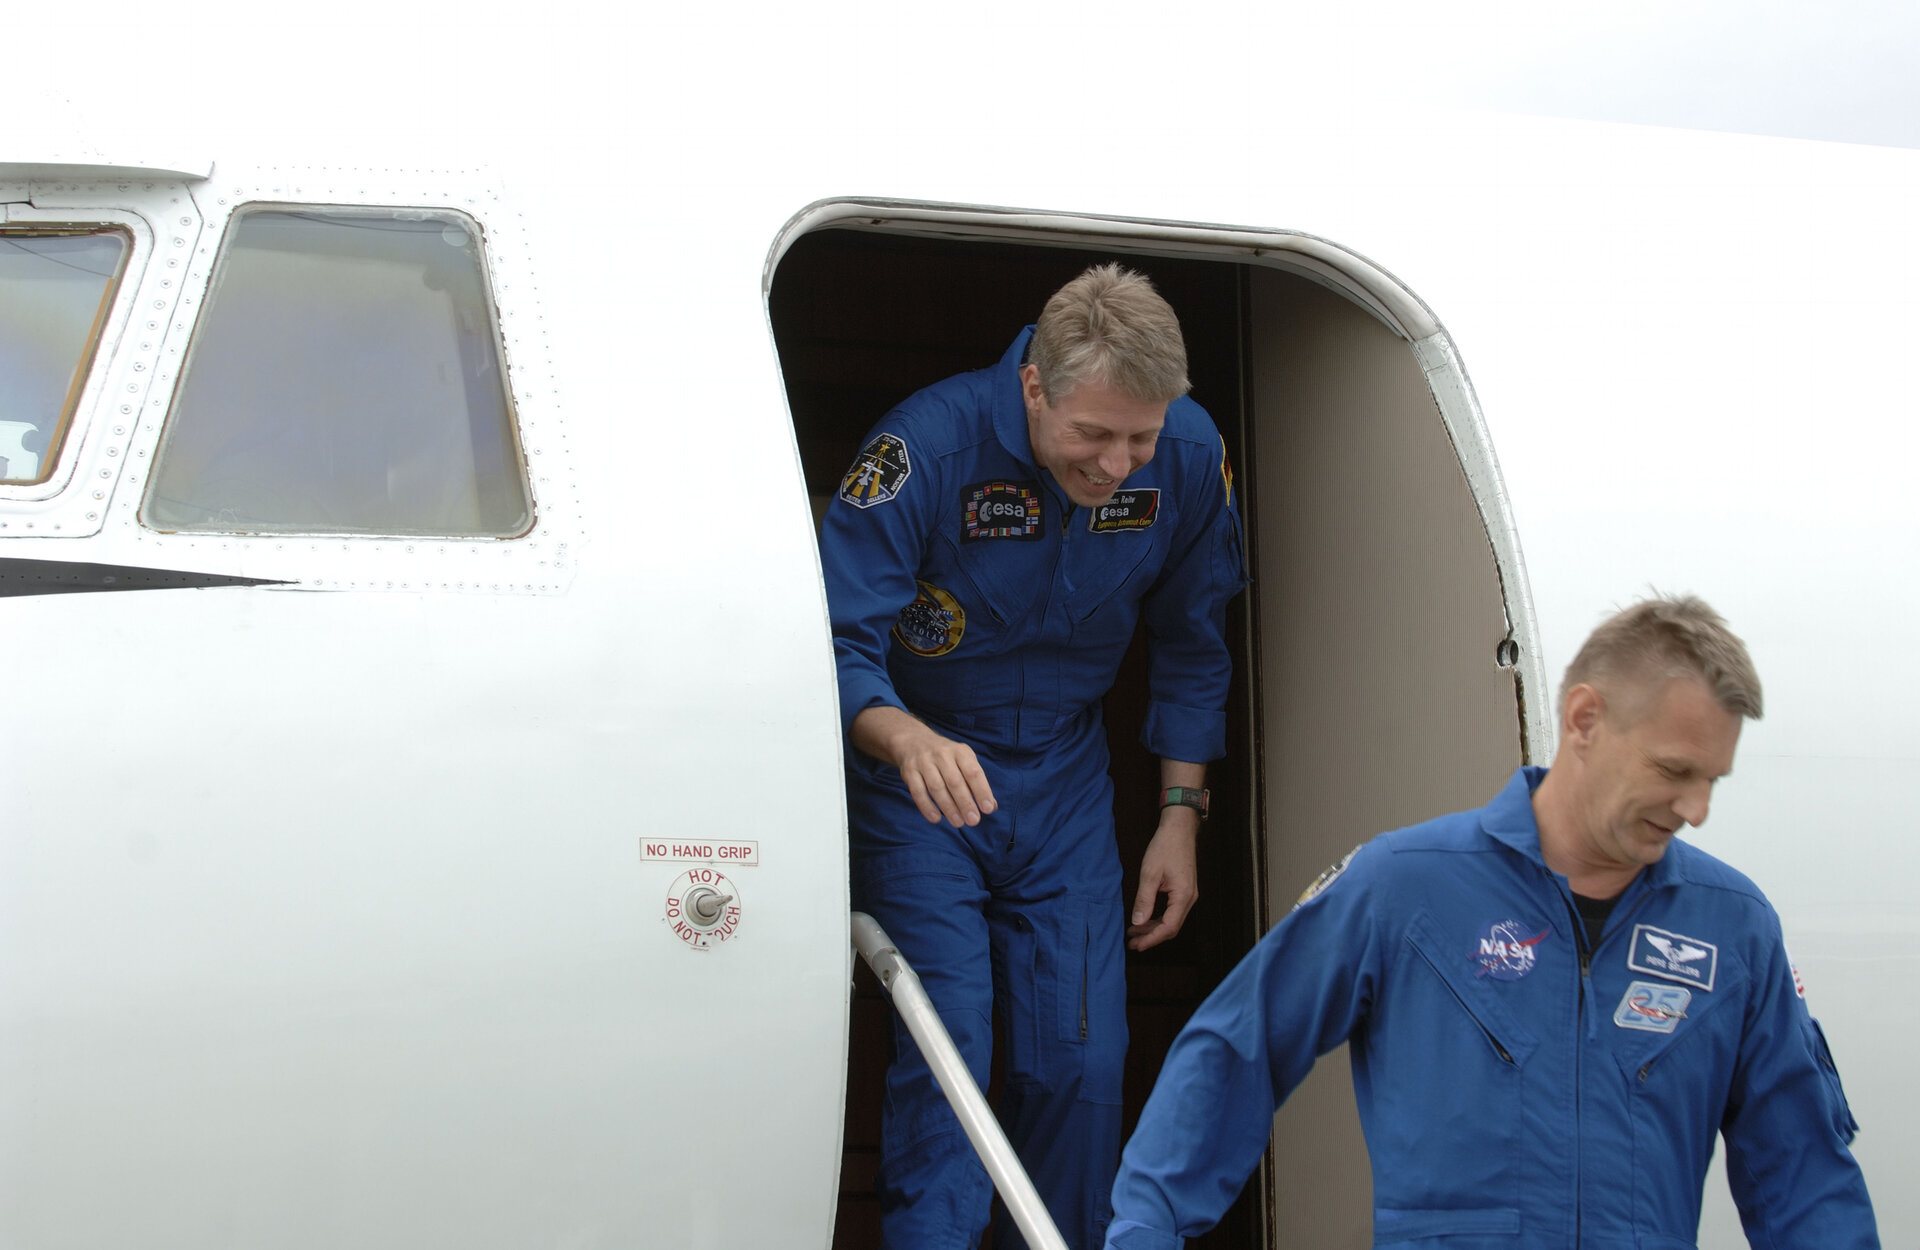 Thomas Reiter arrives at KSC - he will participate in the Terminal Countdown Demonstration Test with the STS-121 crew